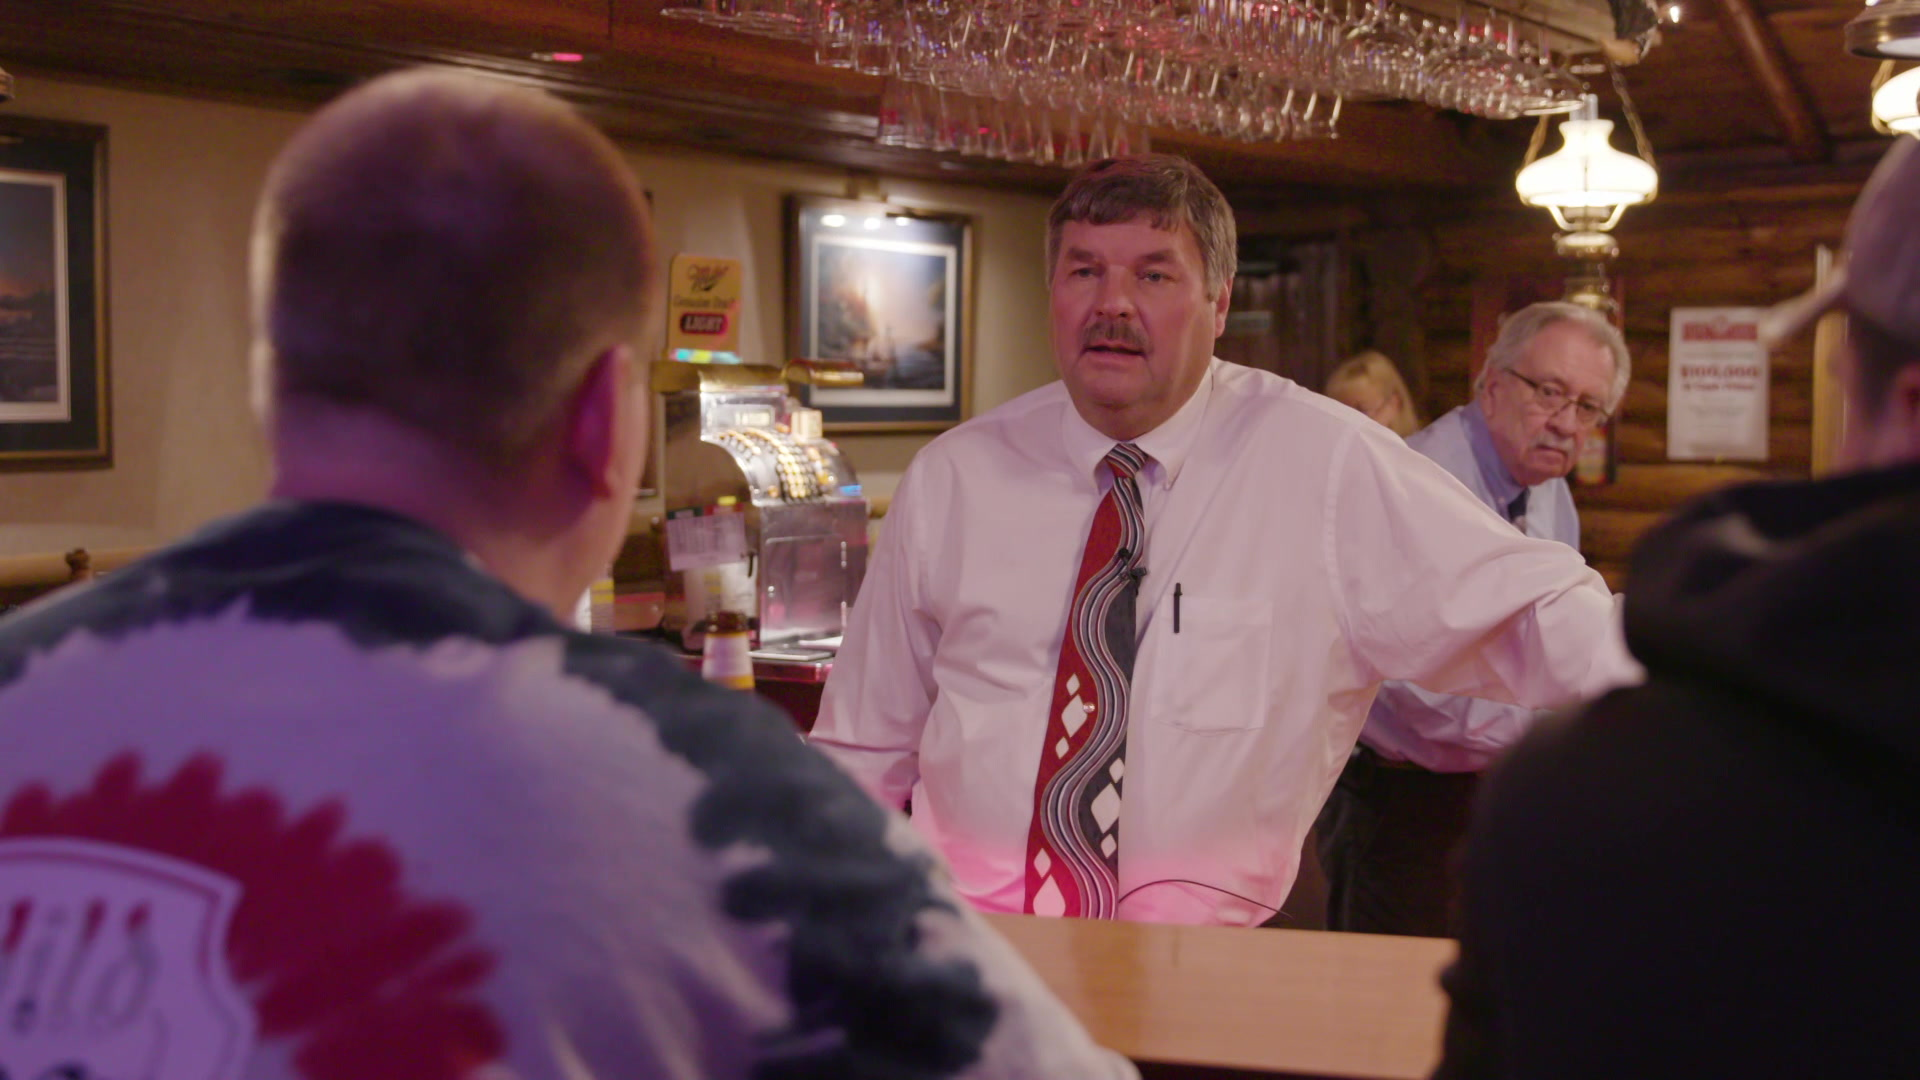 Rob Swearingen stands behind a bar and speaks to seated customers.